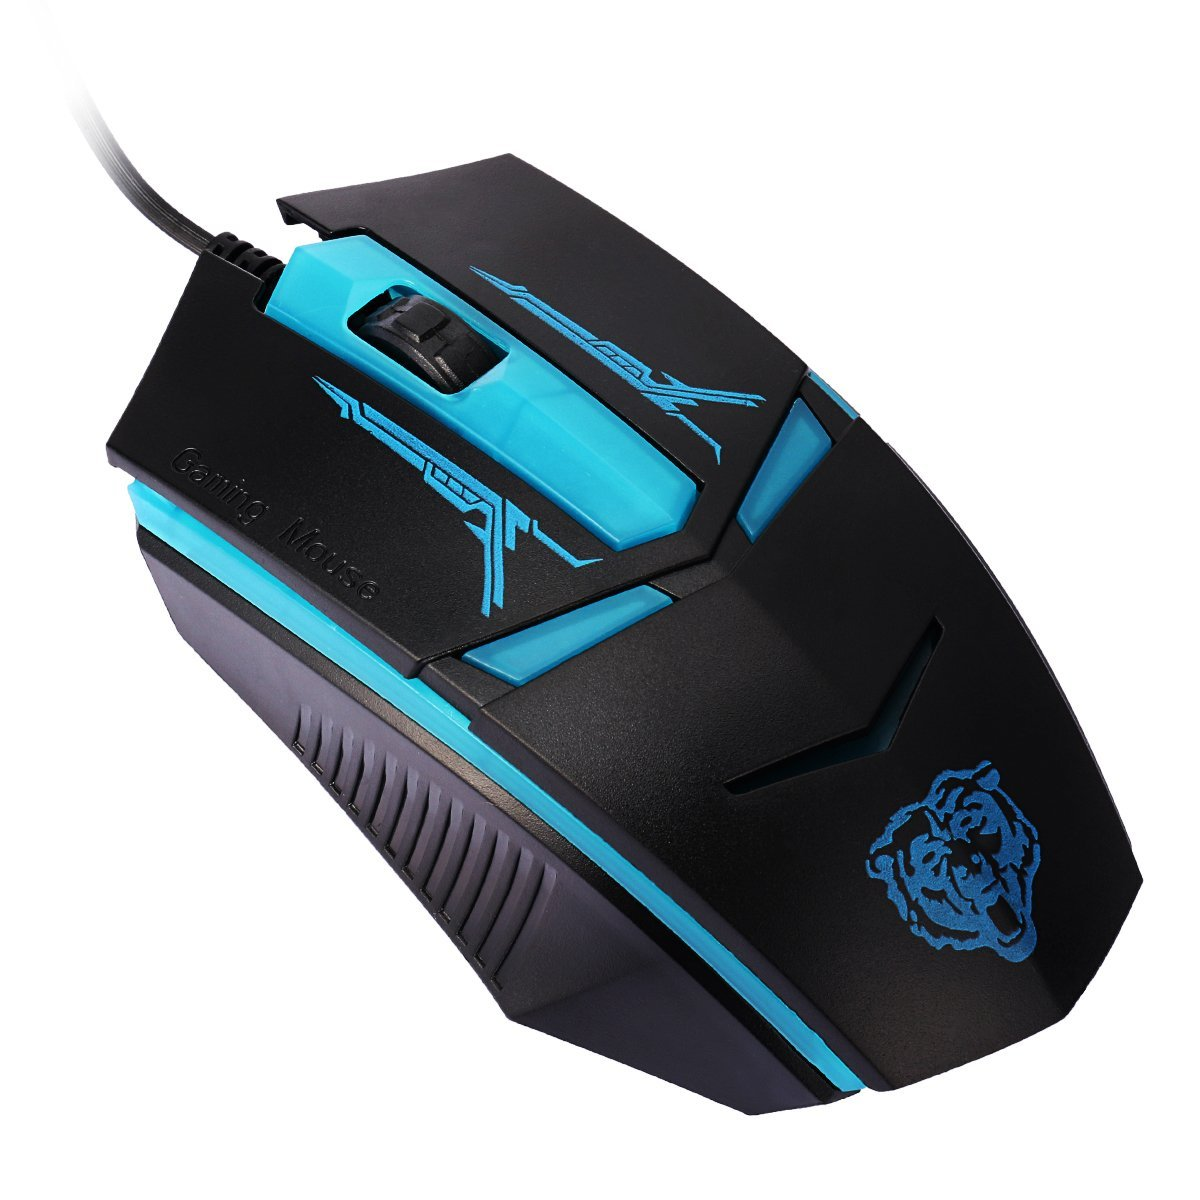 Buy ANCOOLE Optical Wired Mouse Ergonomic Creative Cool Appearance ...